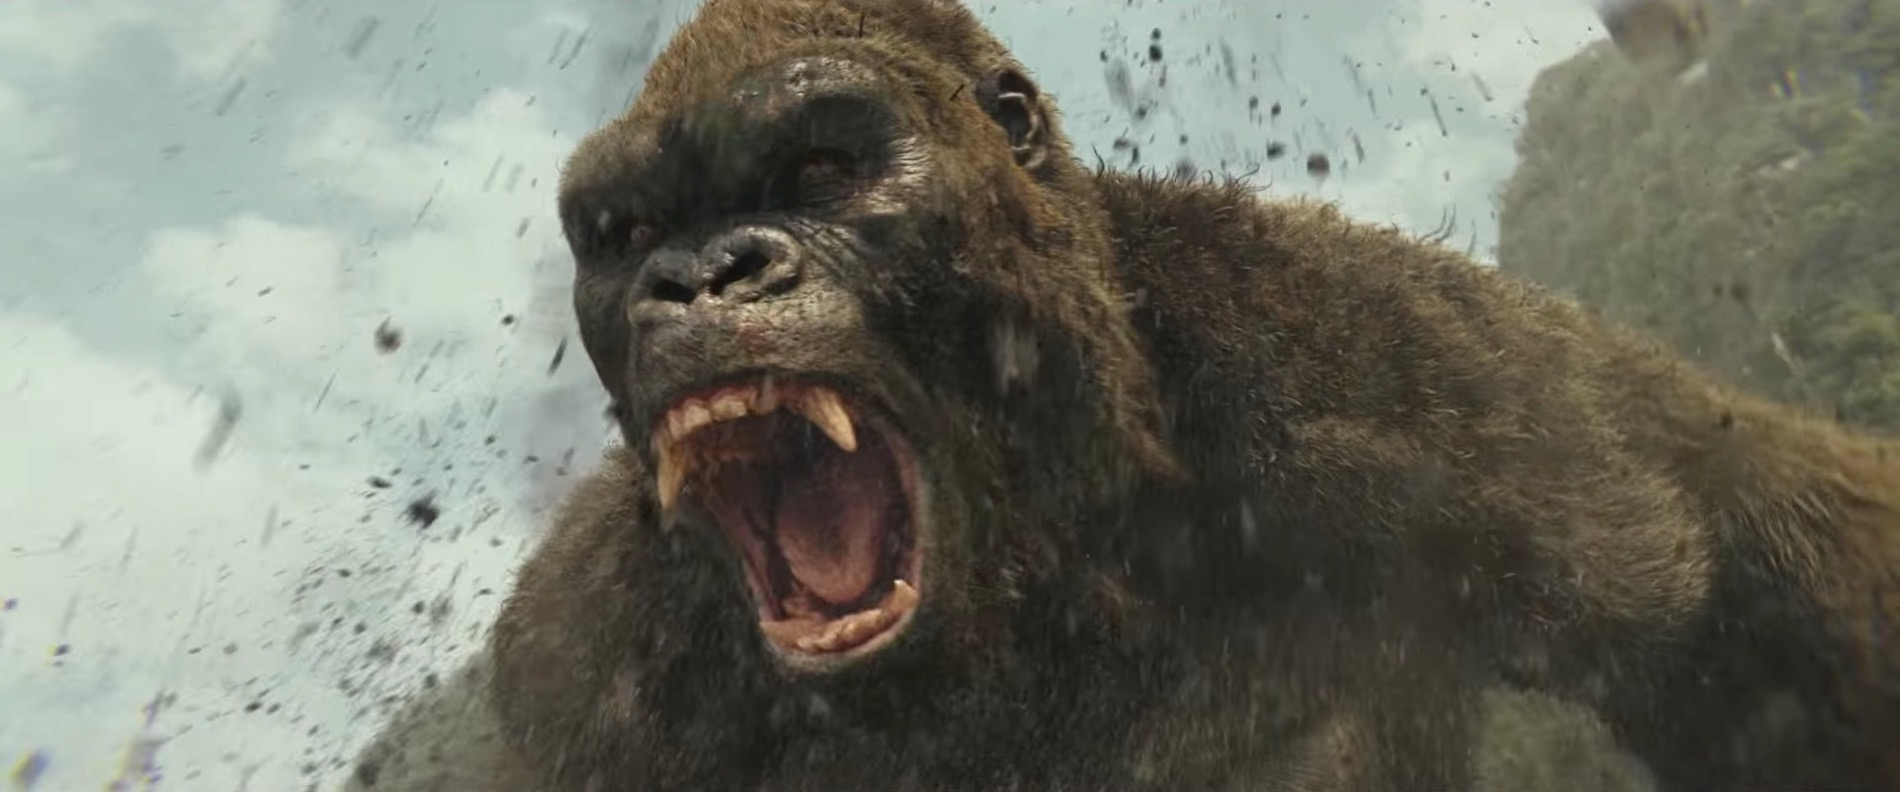 Kong skull island soundtrack on cd - King Kong Himself Is Given Very Good Justice In This Movie Despite Not Being Quite As Fleshed Out As In Other Versions The Kong From Peter Jackson S